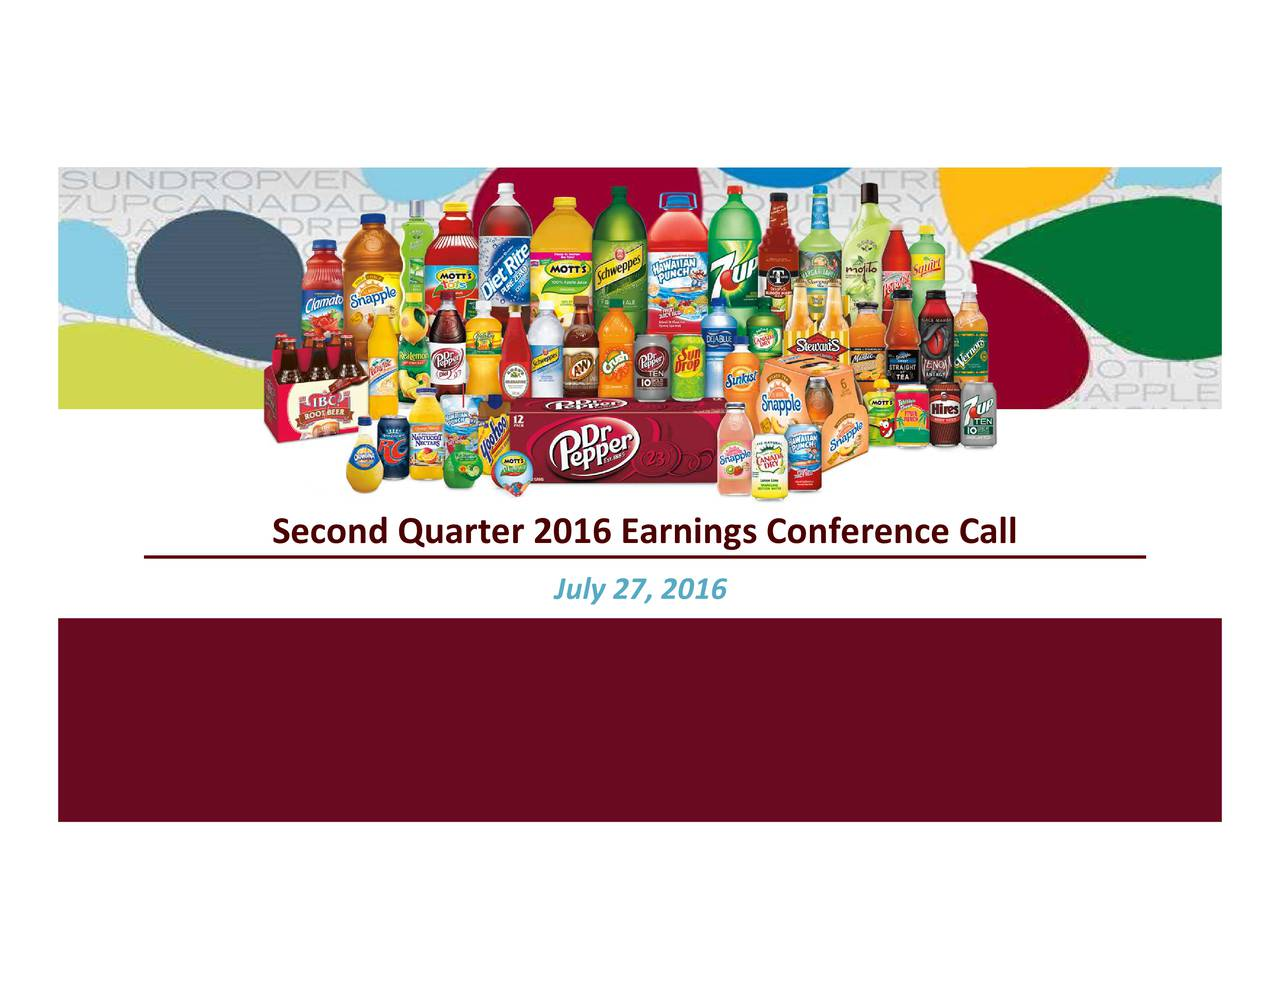 Second Quarter 2016 Earnings Conference Call